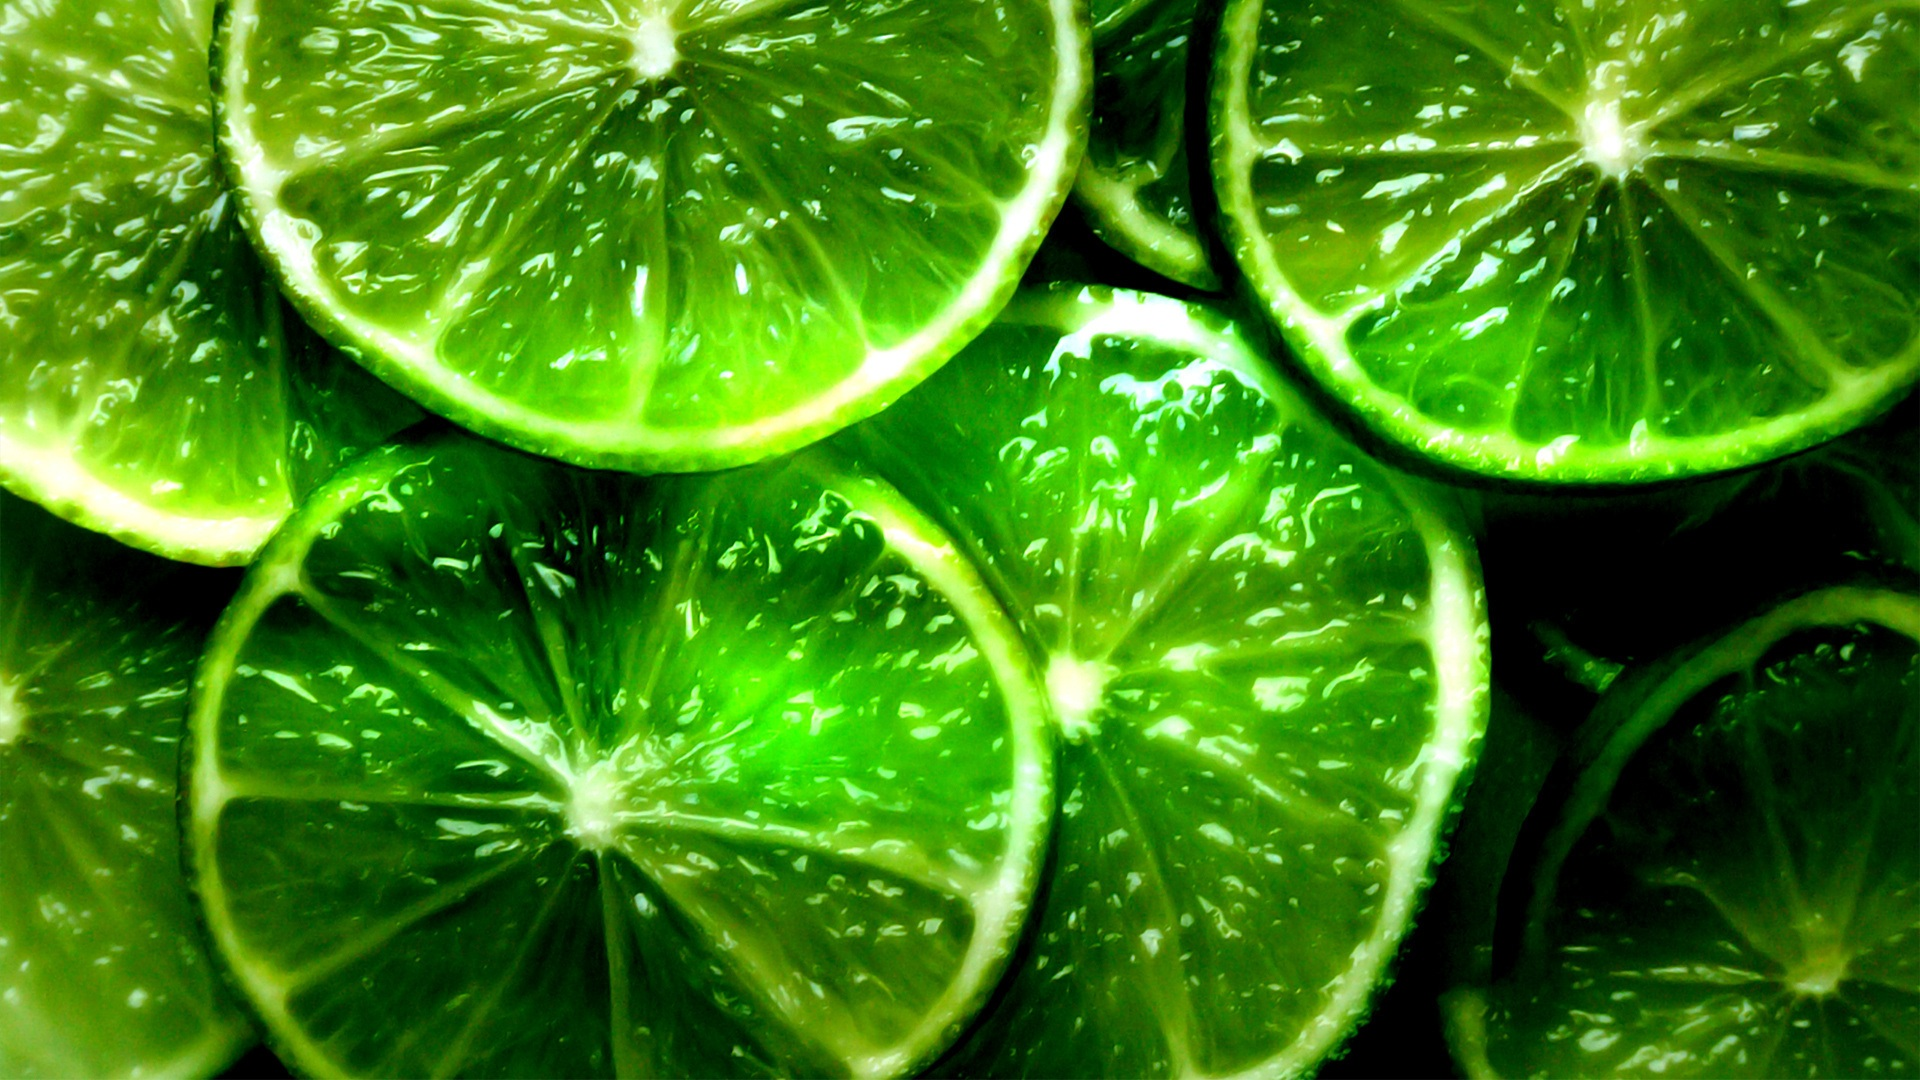 wallpaper details file name lime green wallpaper uploaded by the best 1920x1080